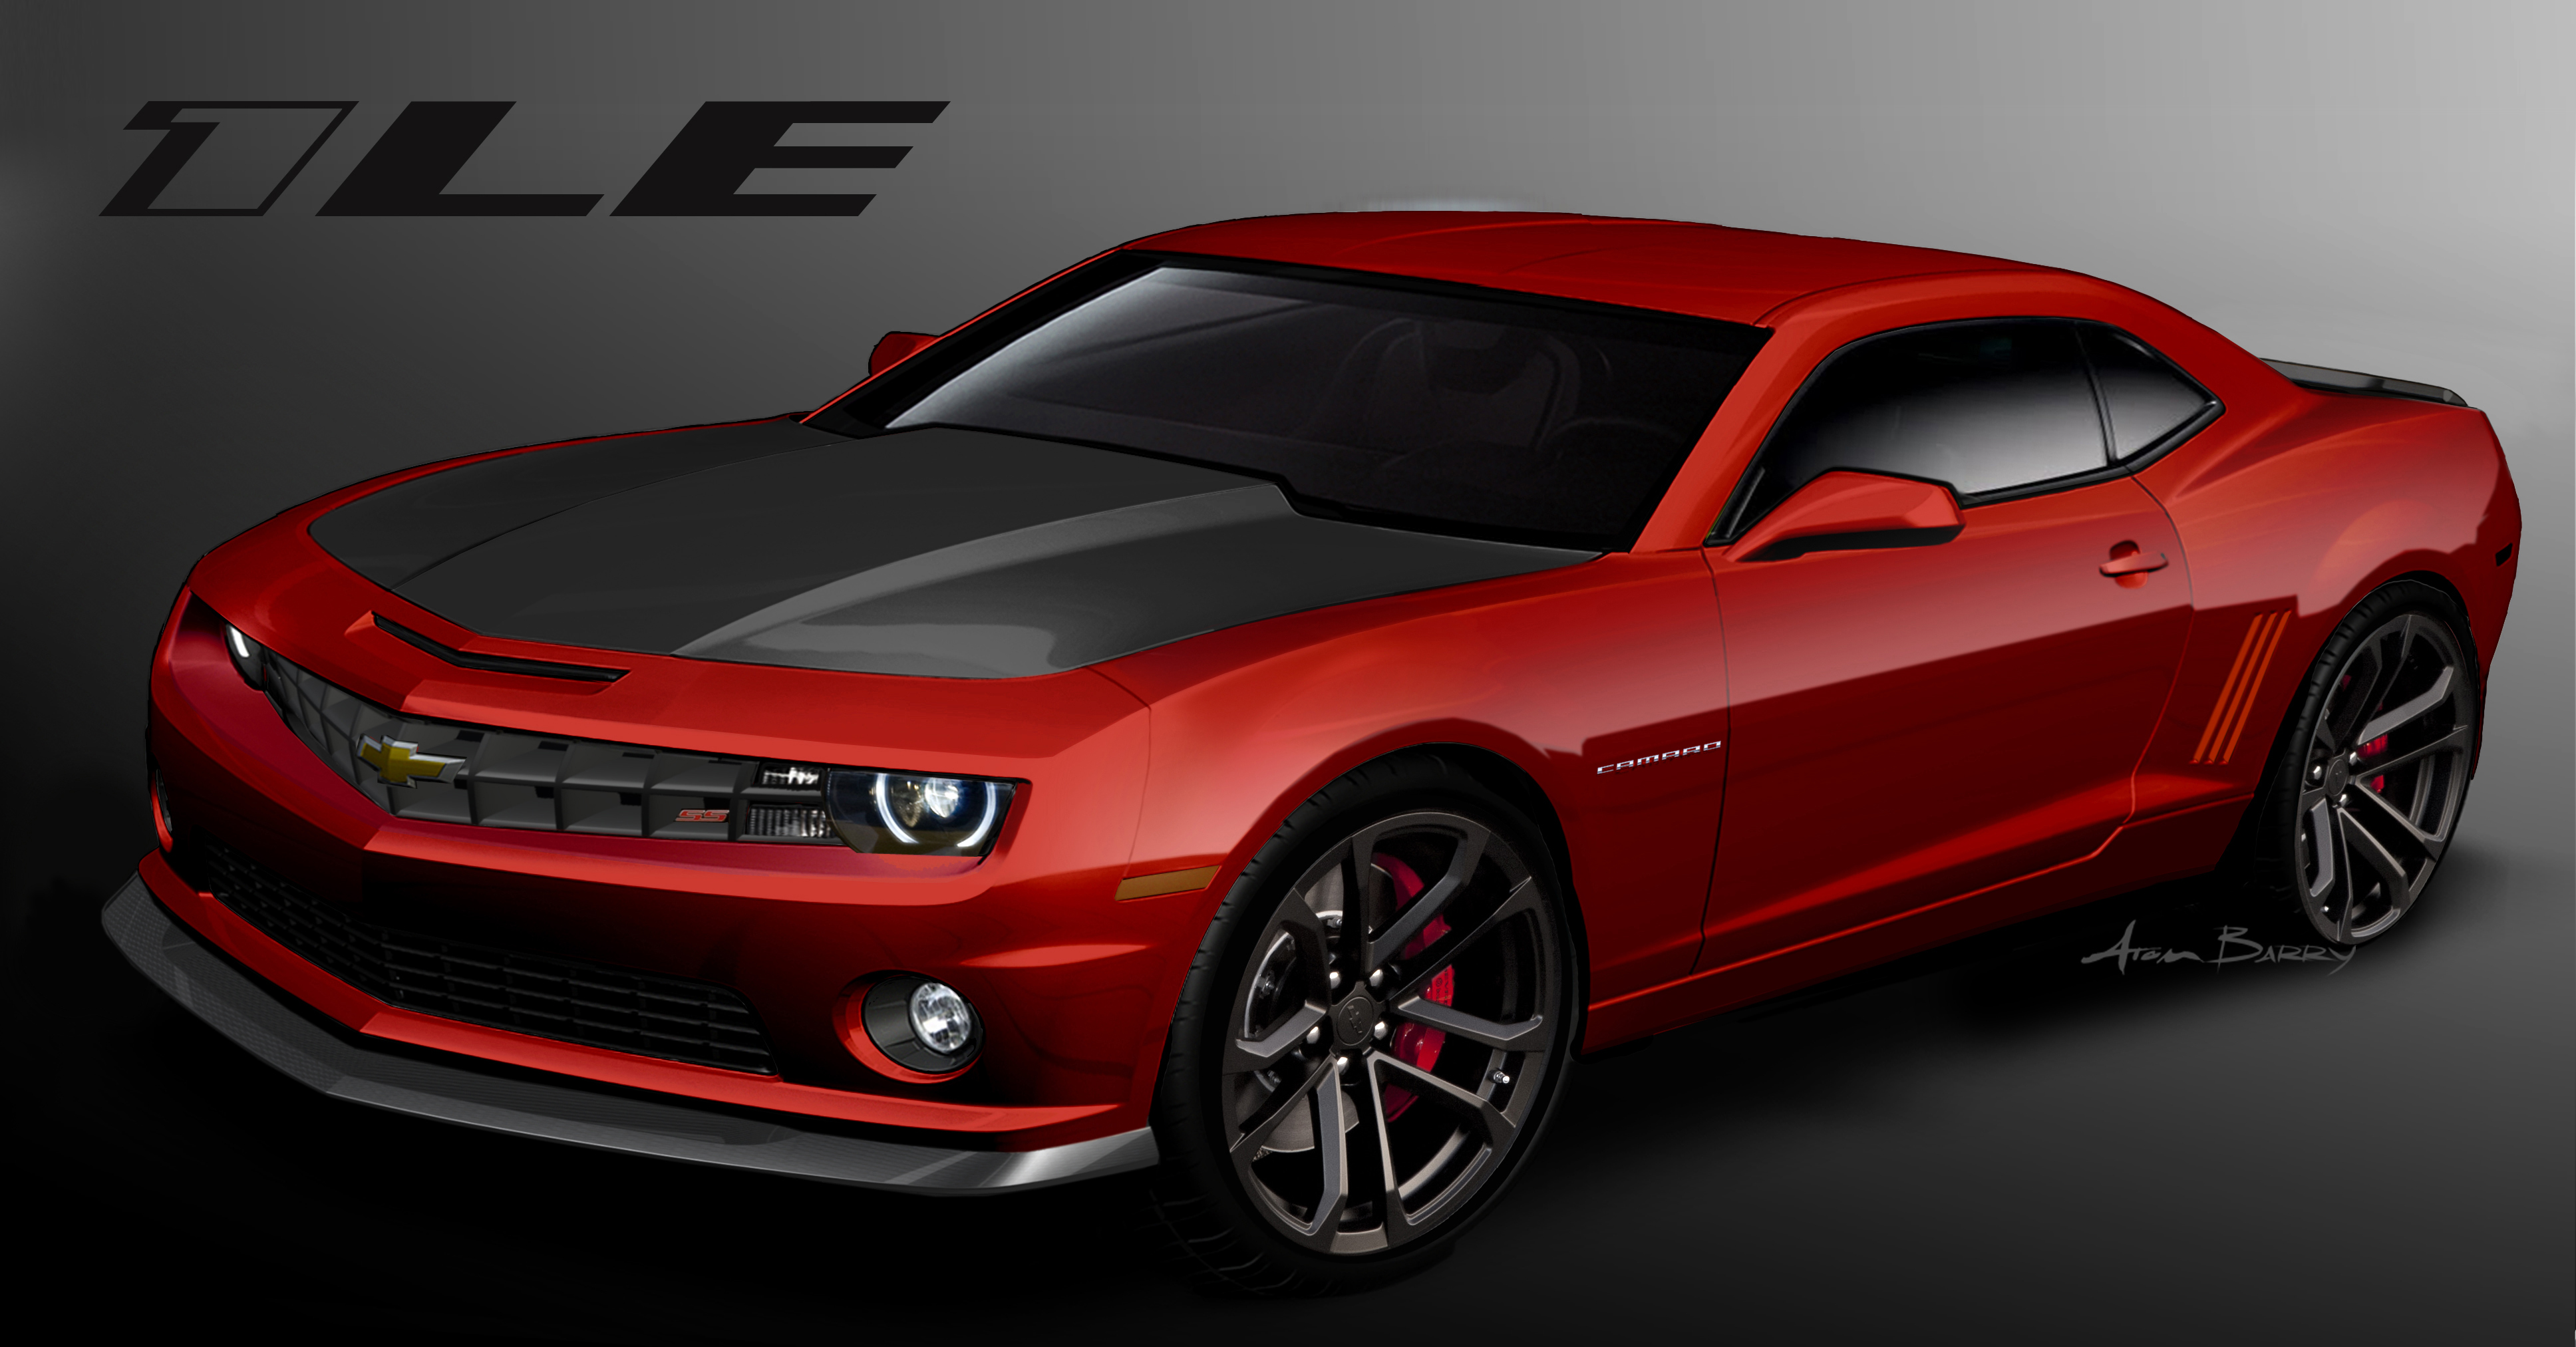 1LE Option Finally Returns for the 2013 Camaro : 426-hp, 1g cornering, under $40,000